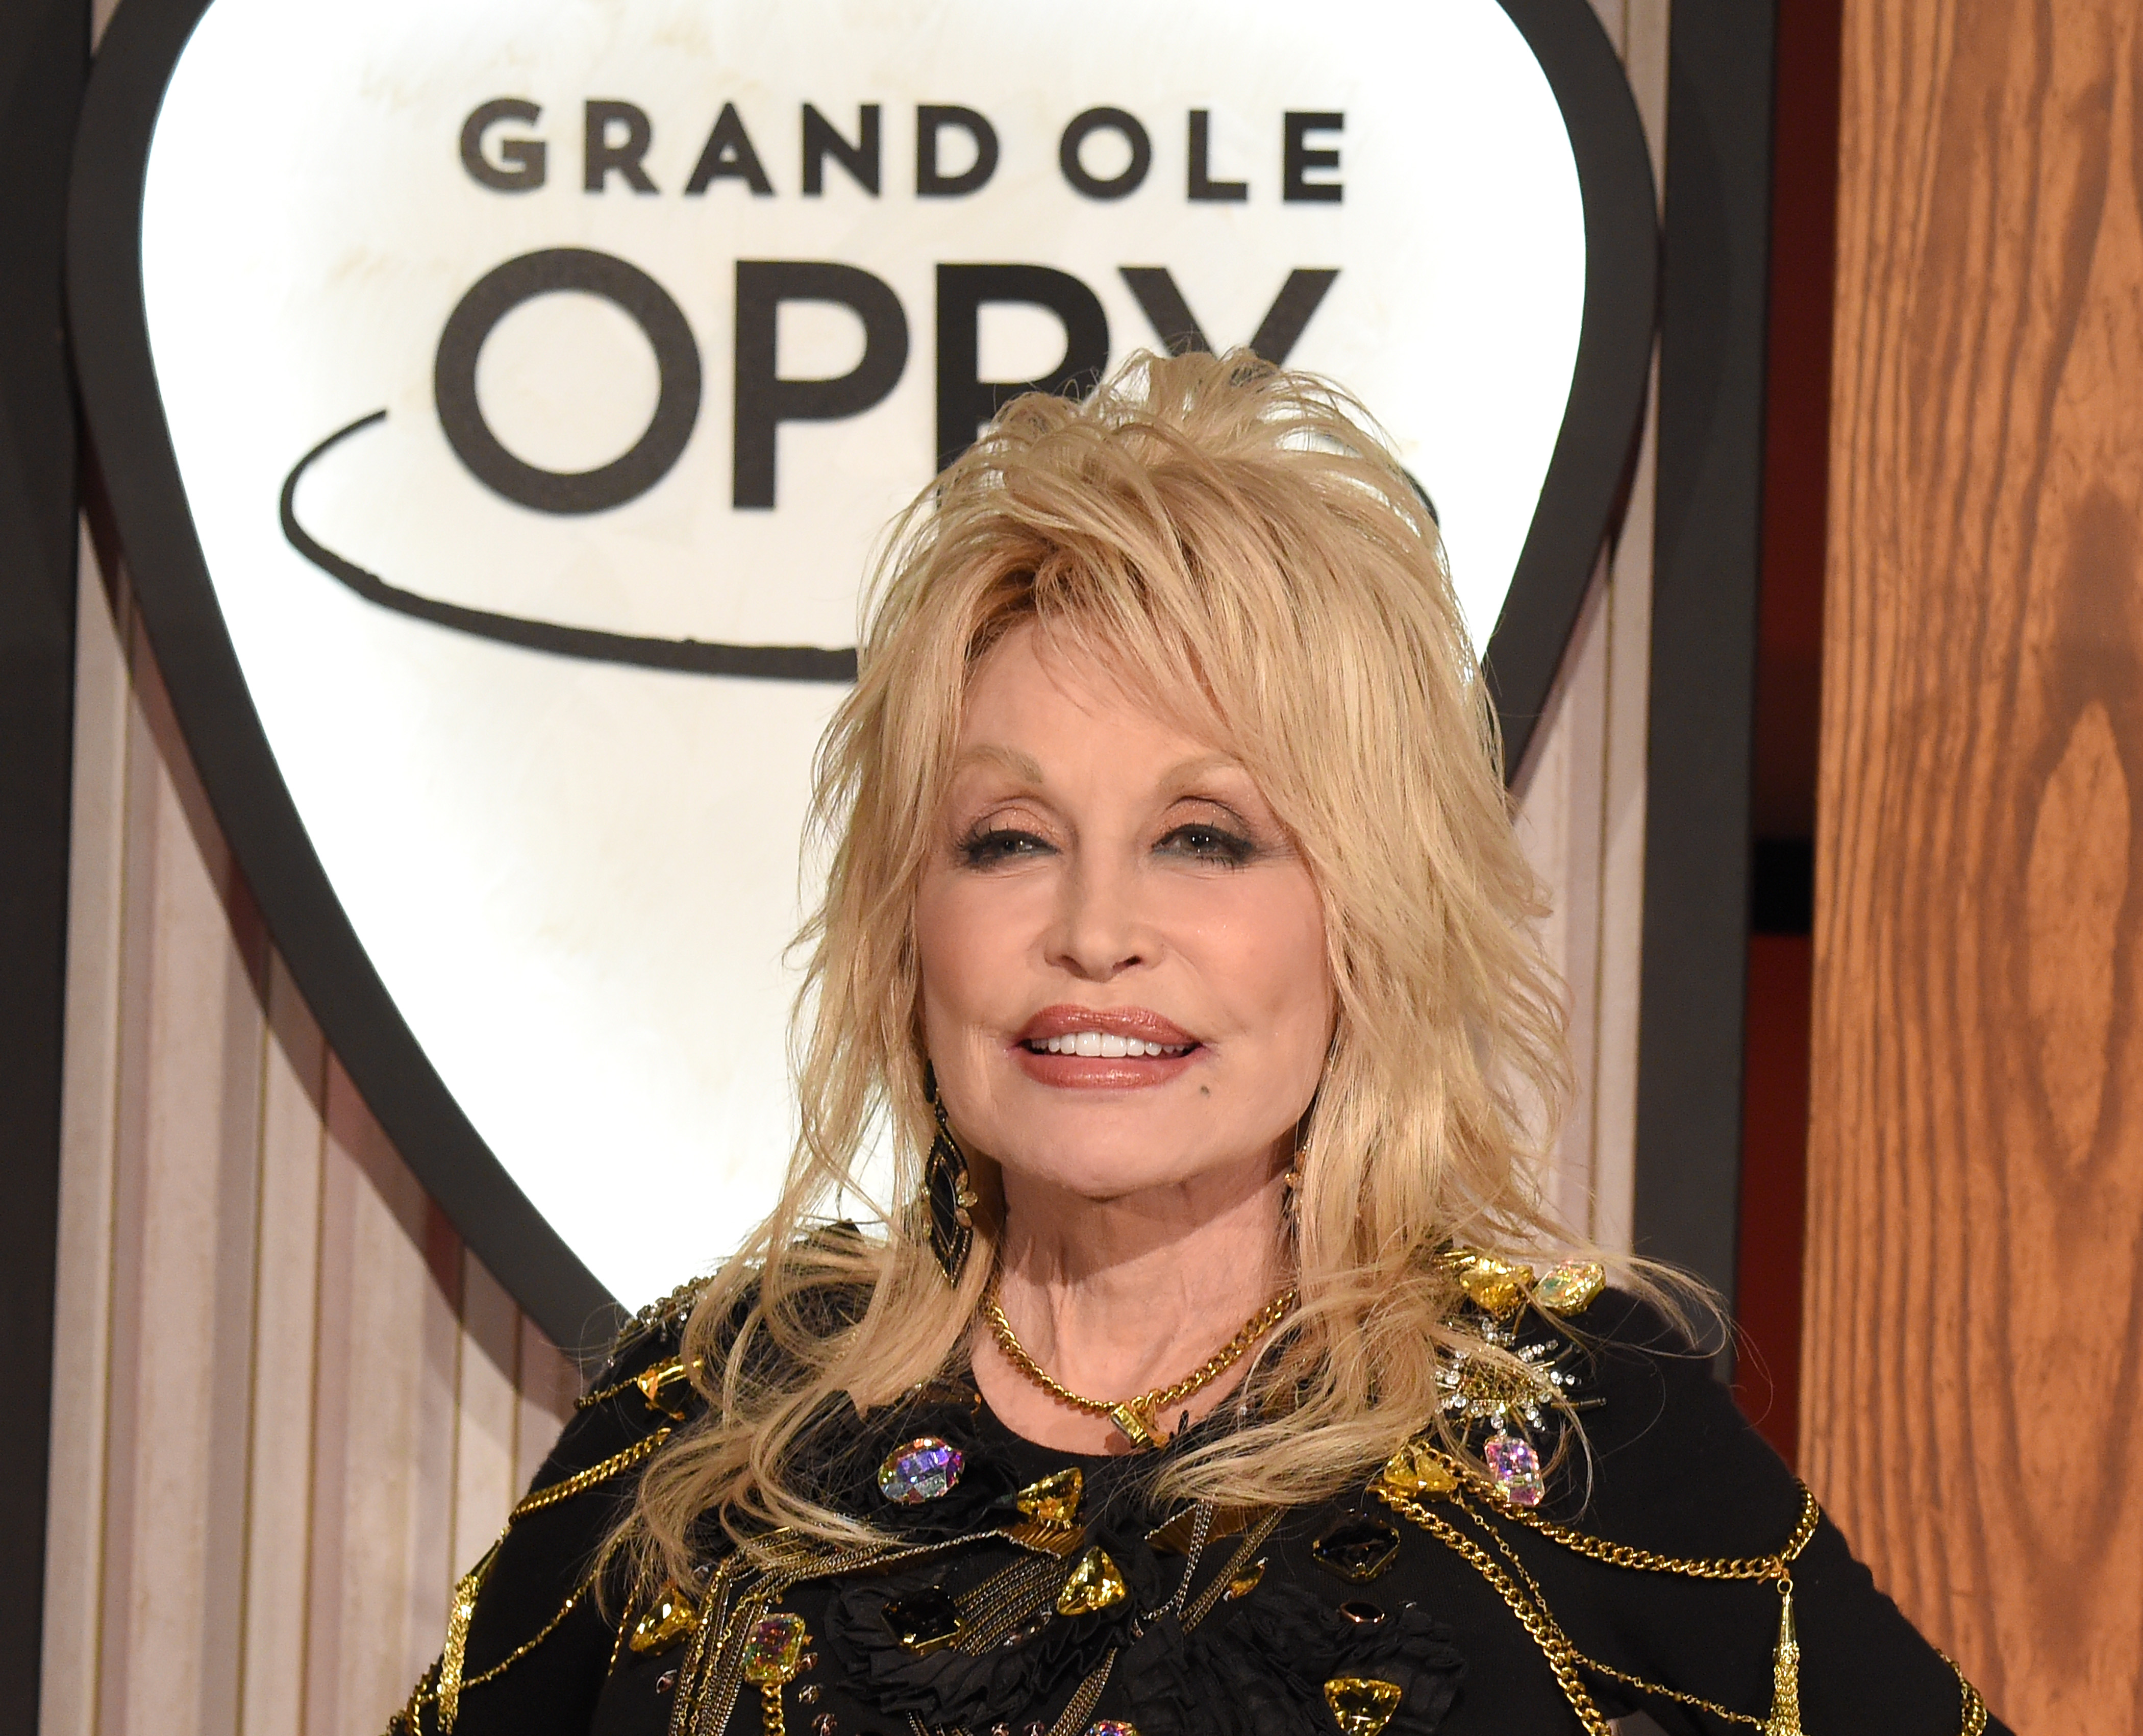 Dolly Parton Reflects on Her Tough Times and Says She Wants to Just 'Shine a Little Bit'